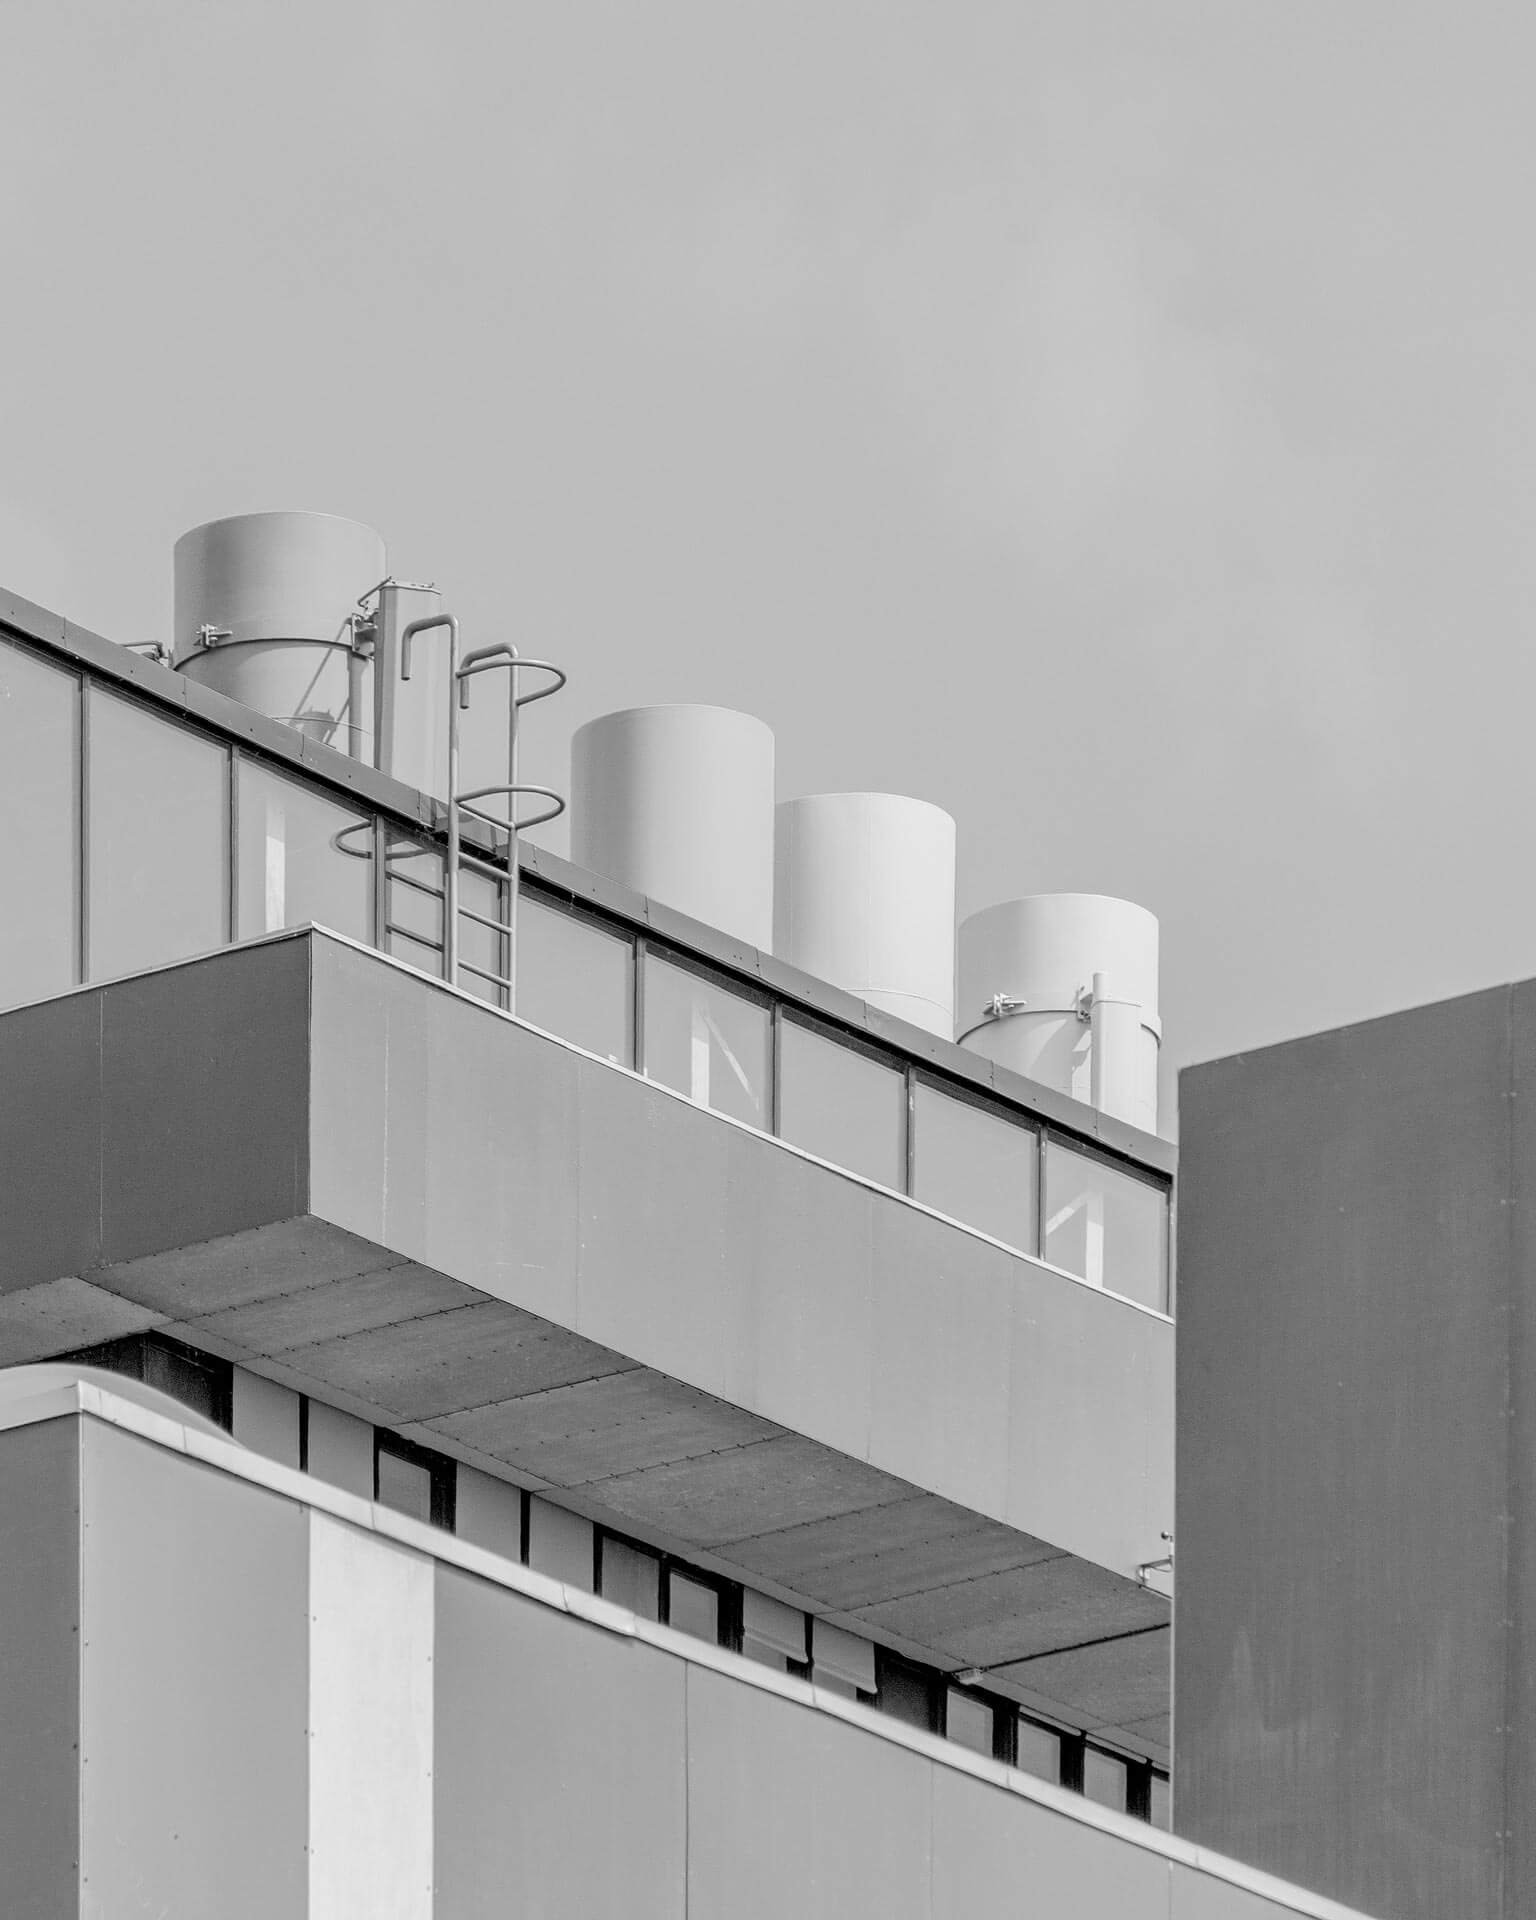 Greyscale architecture.